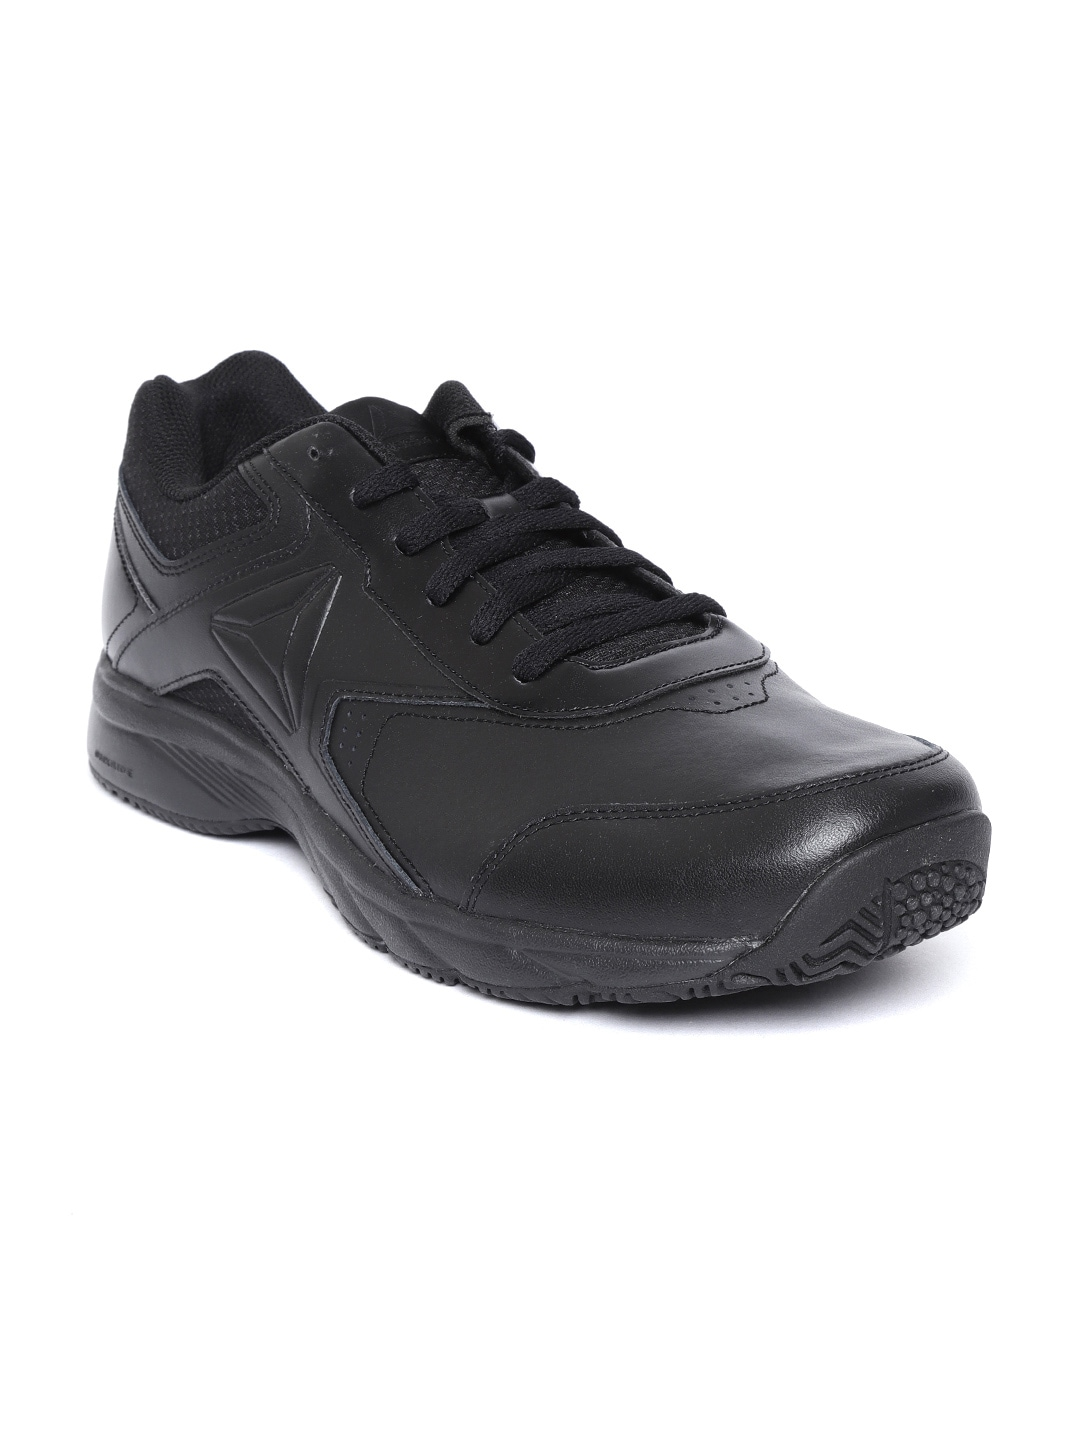 321e9ff99096ab Reebok Sports Shoes - Buy Reebok Sports Shoes in India